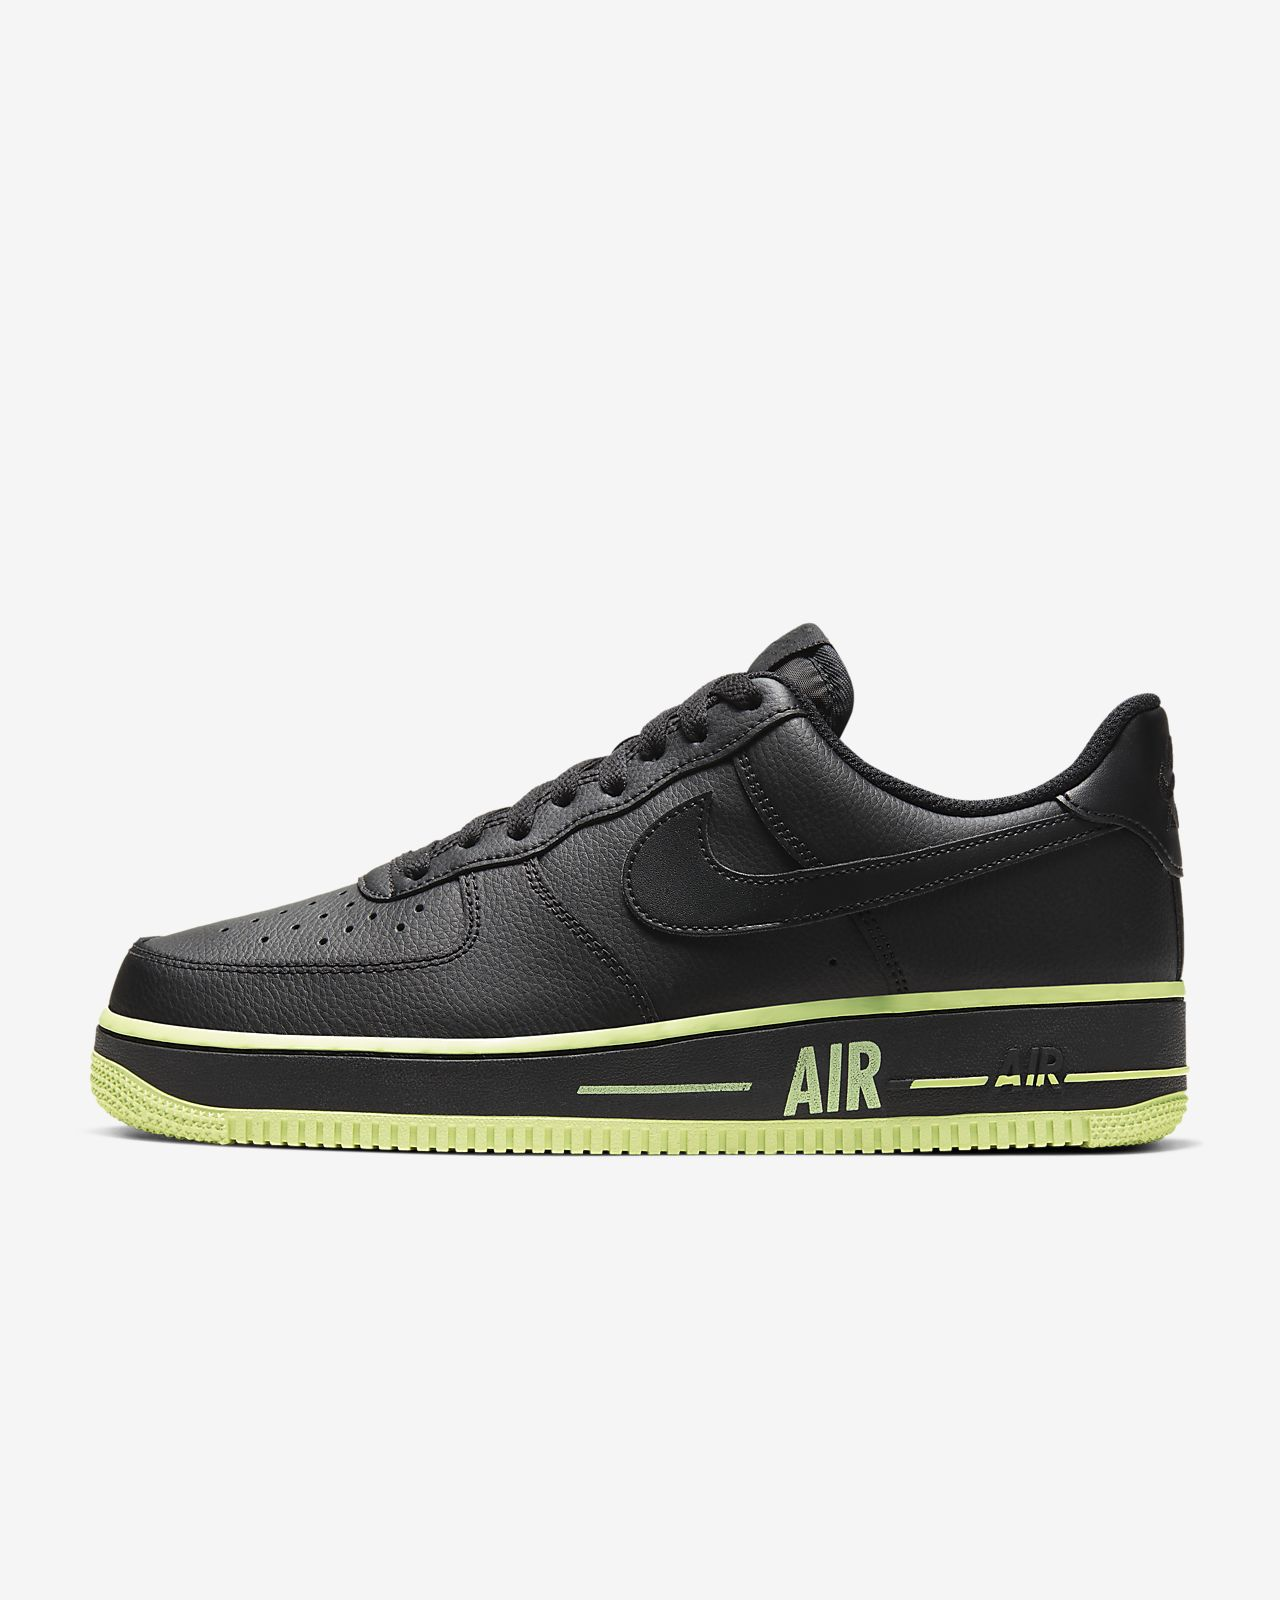 Nike Air Force 1 '07 3 Men's Shoe